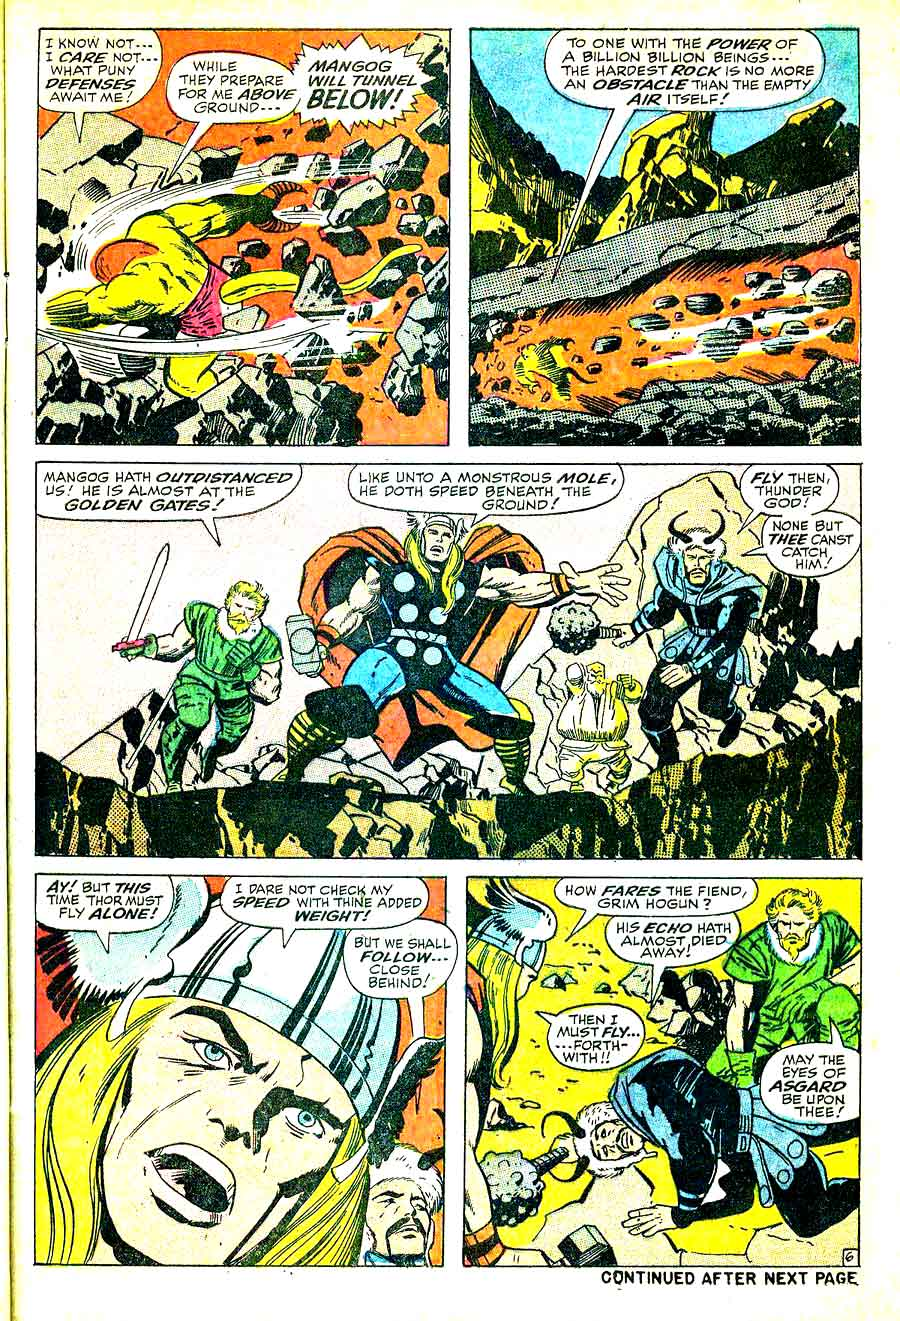 Thor v1 #157 marvel 1960s silver age comic book page art by Jack Kirby